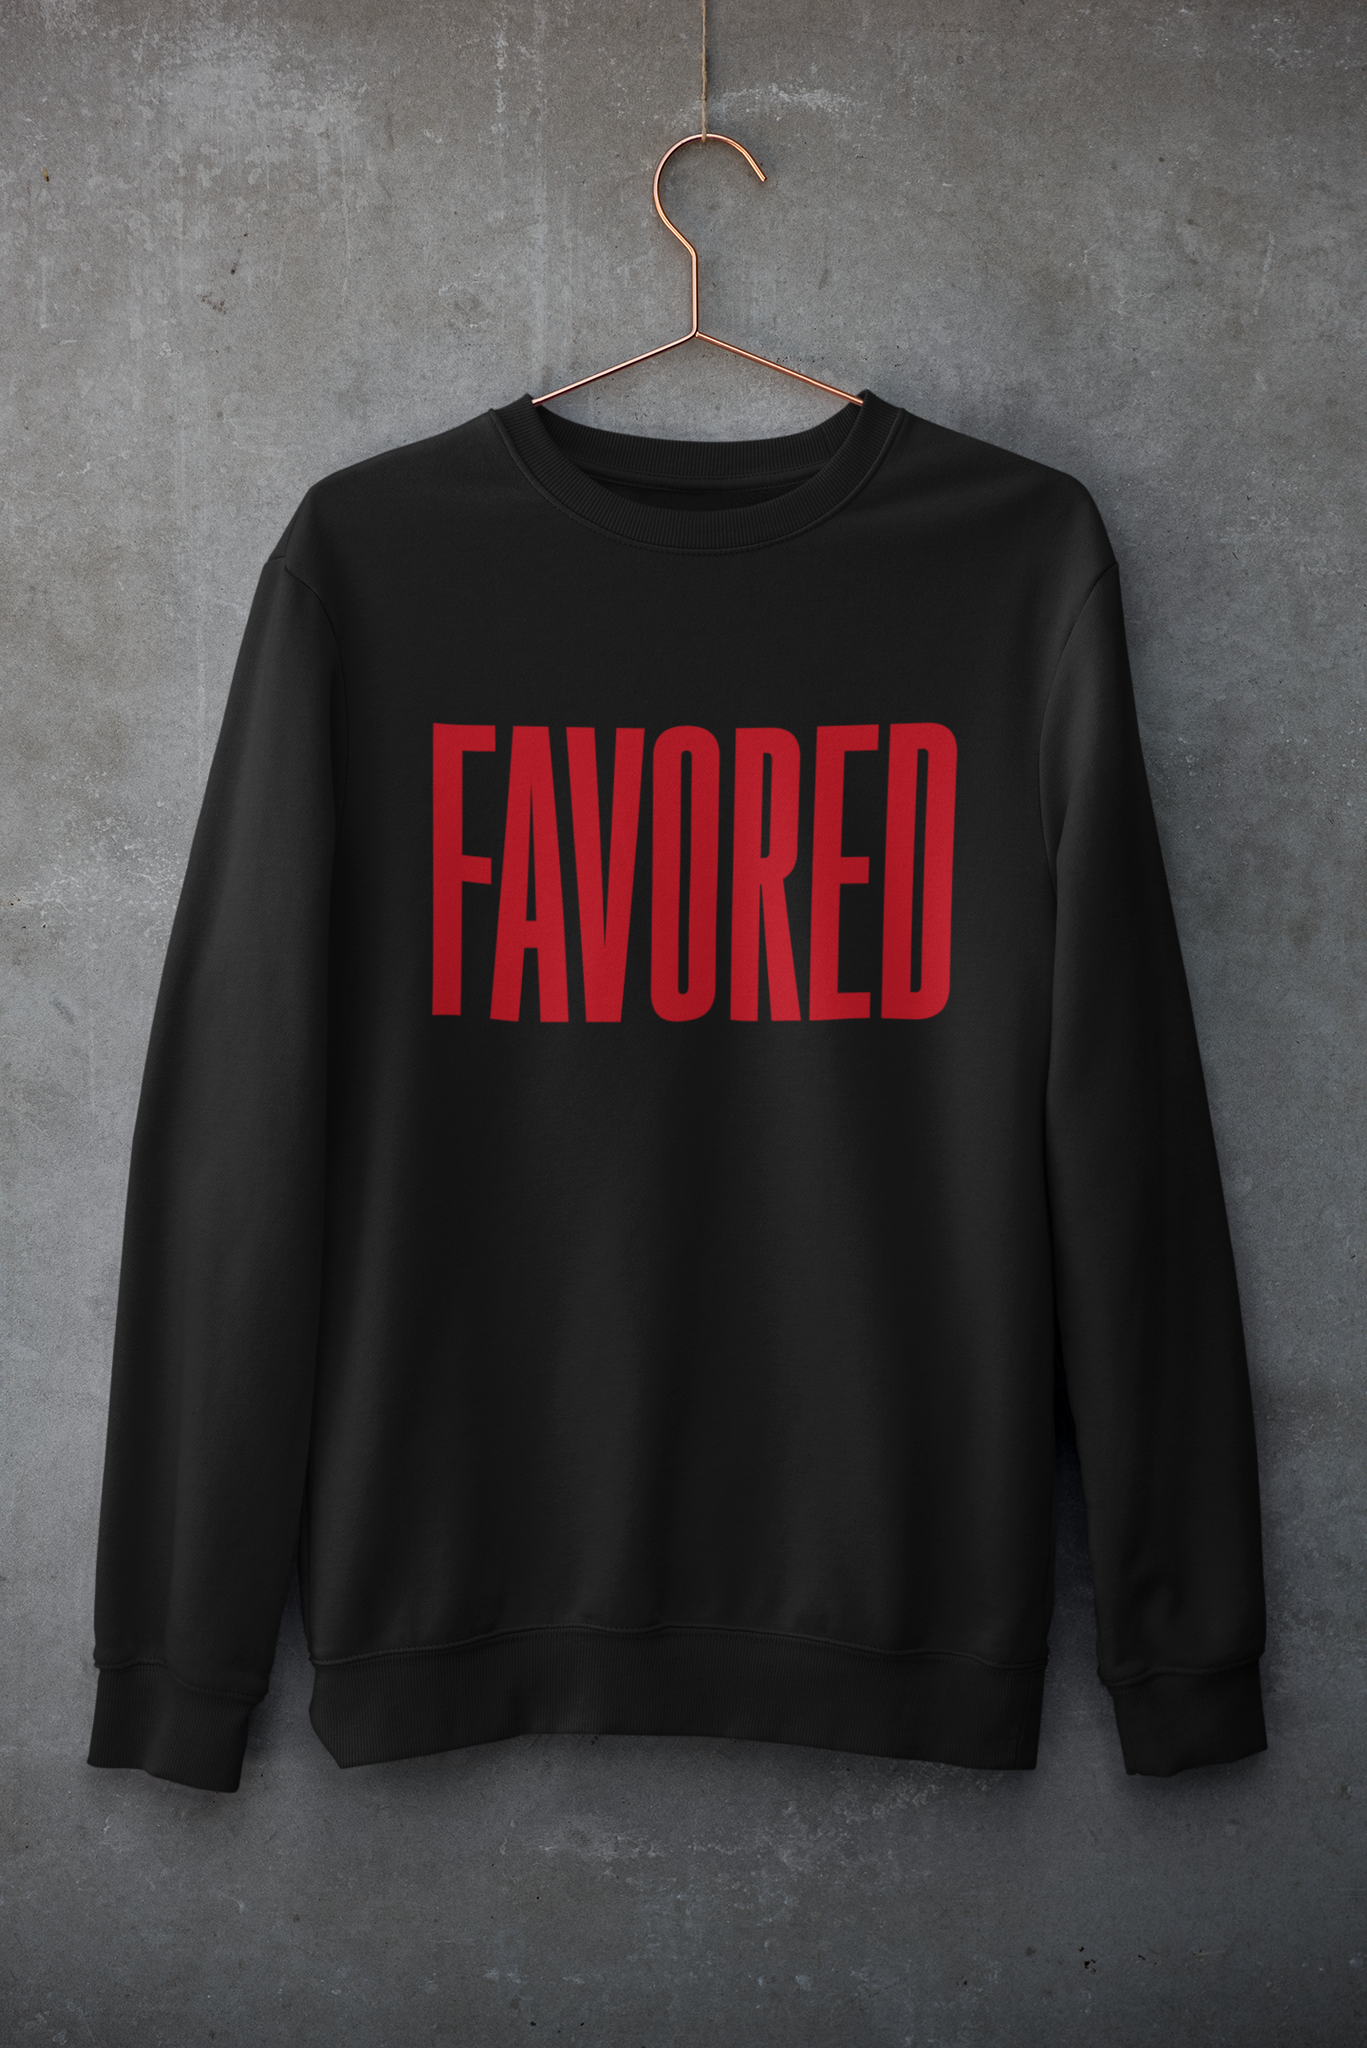 FAVORED SWEATSHIRT